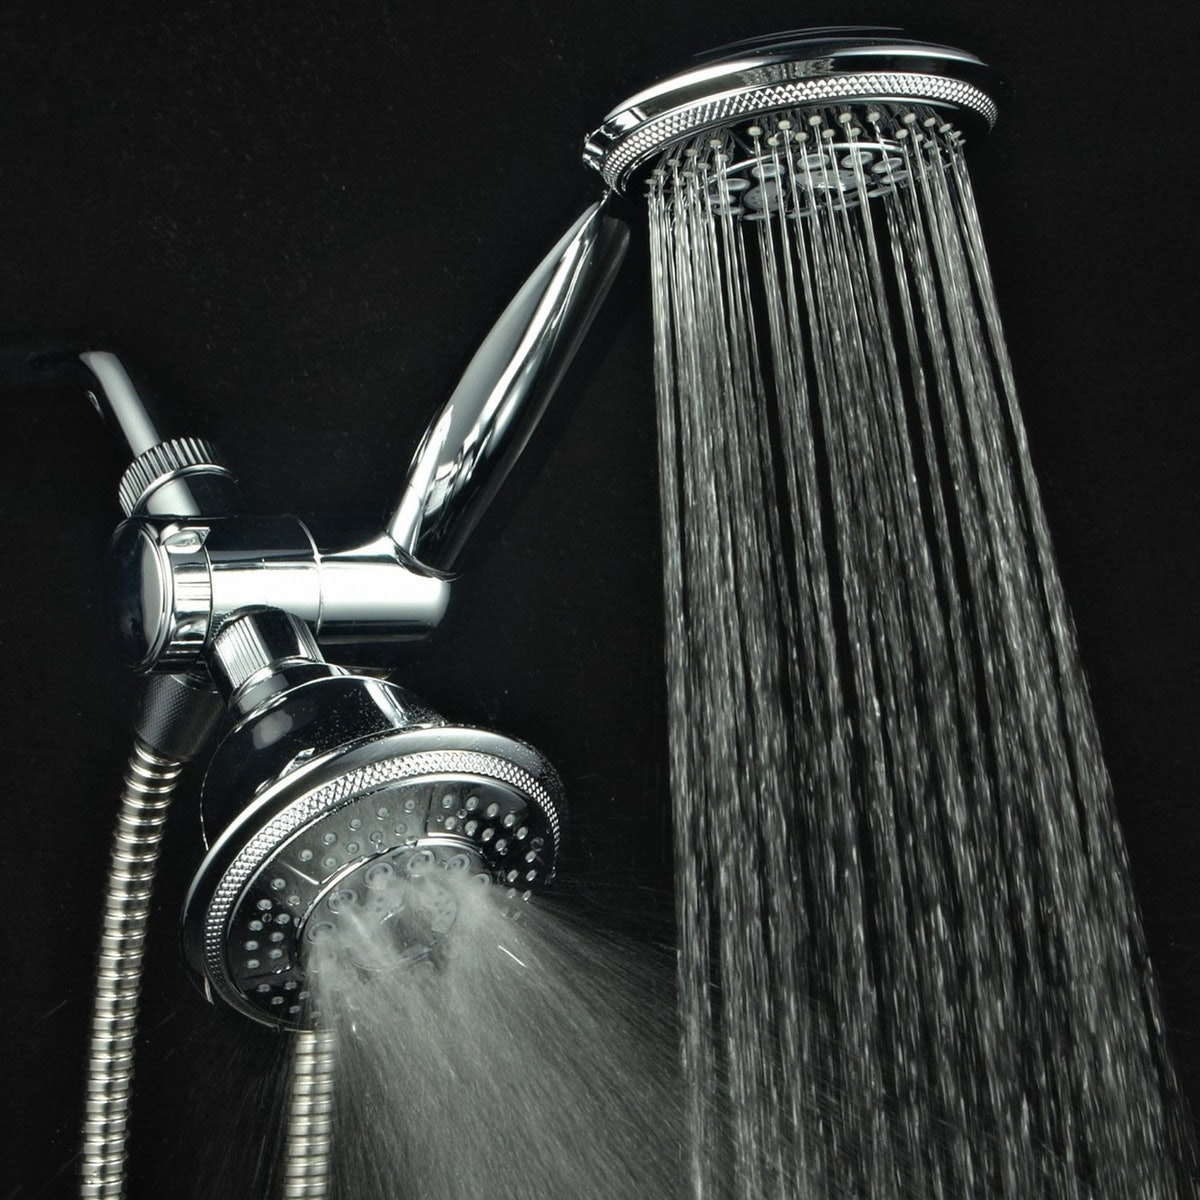 Hydroluxe Two-In-One Showerhead